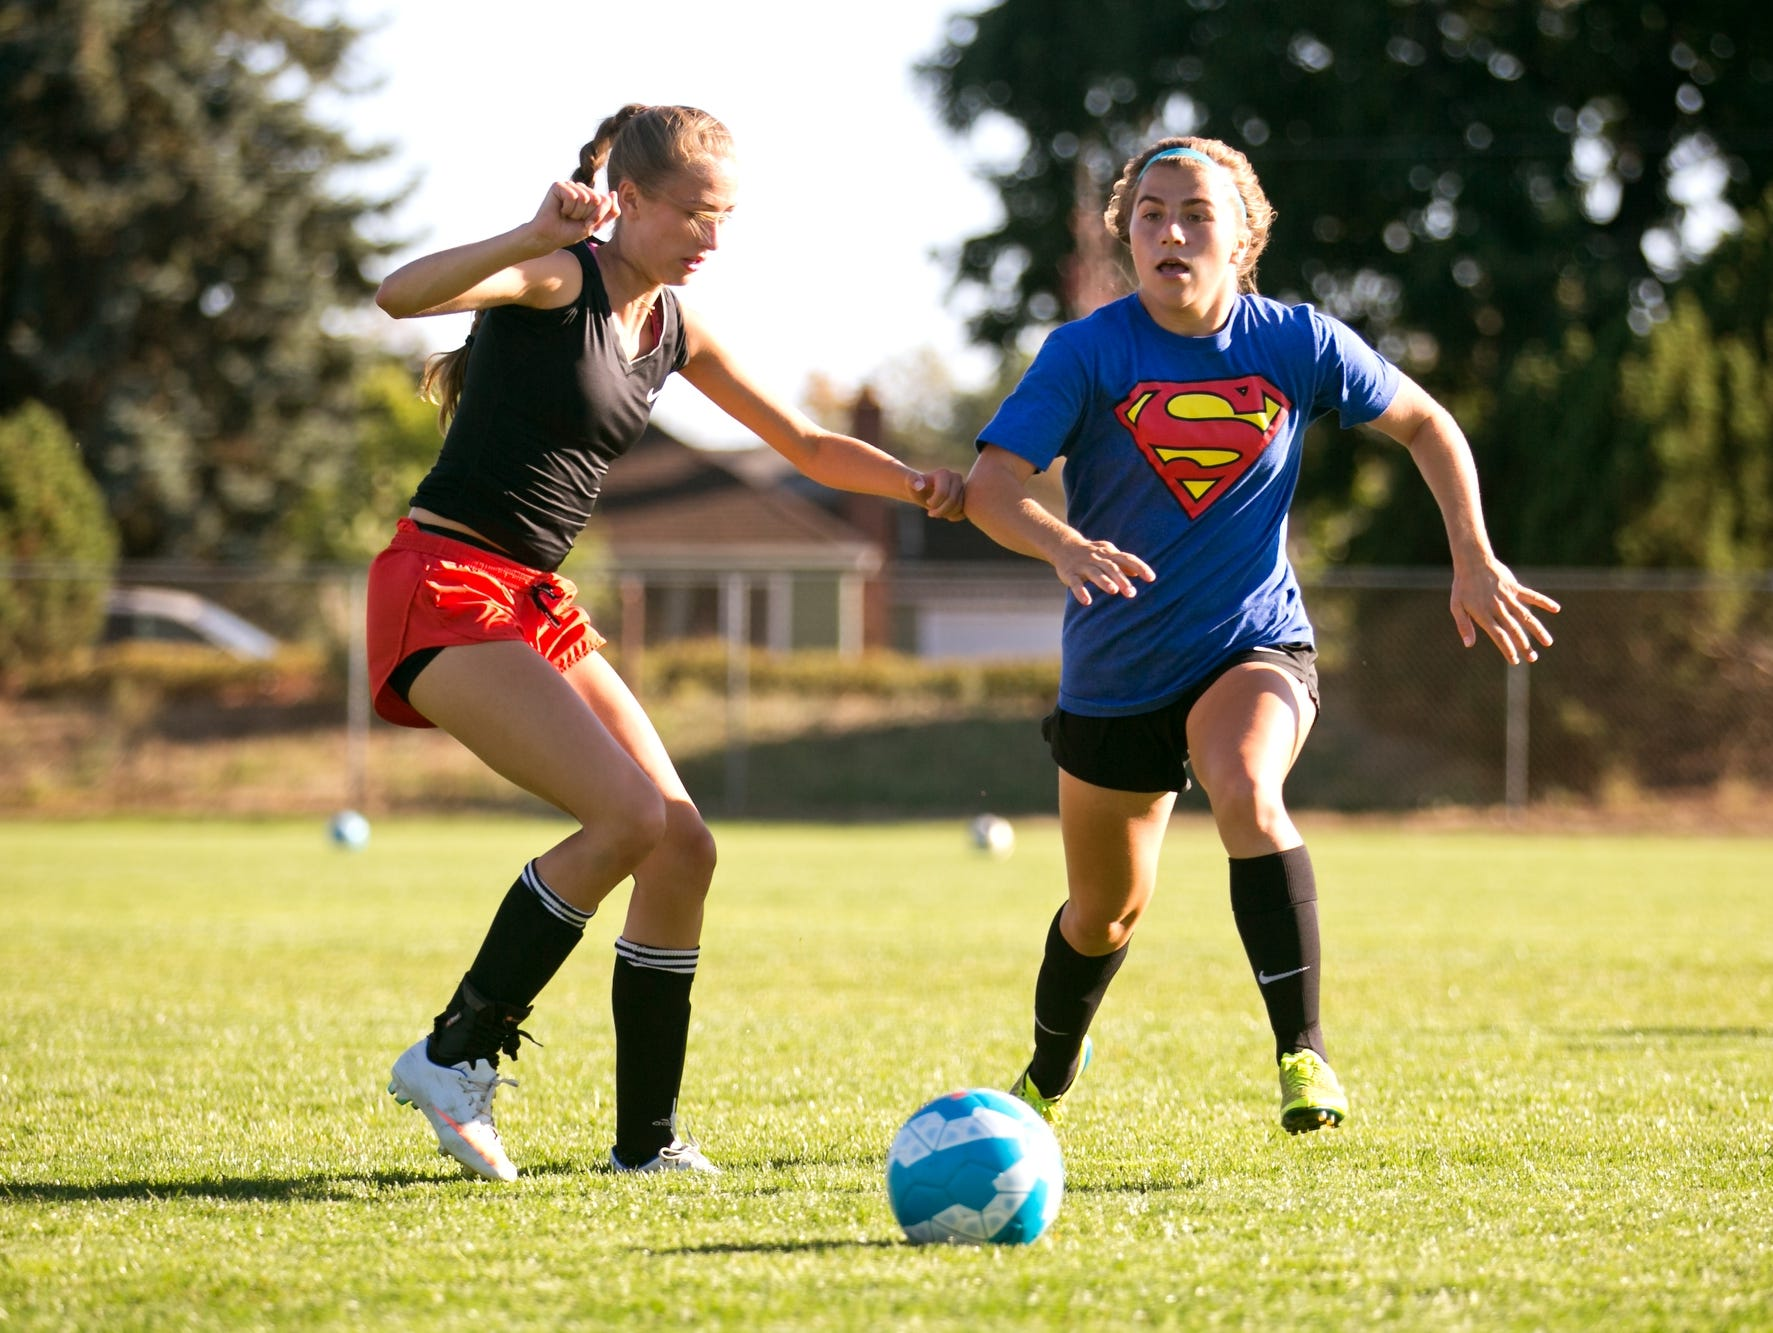 Defensive center midfielder Emily Collier (right) dribbles past Trinity Phillips at a practice for Blanchet Catholic School on Monday, Sept. 12, 2016.